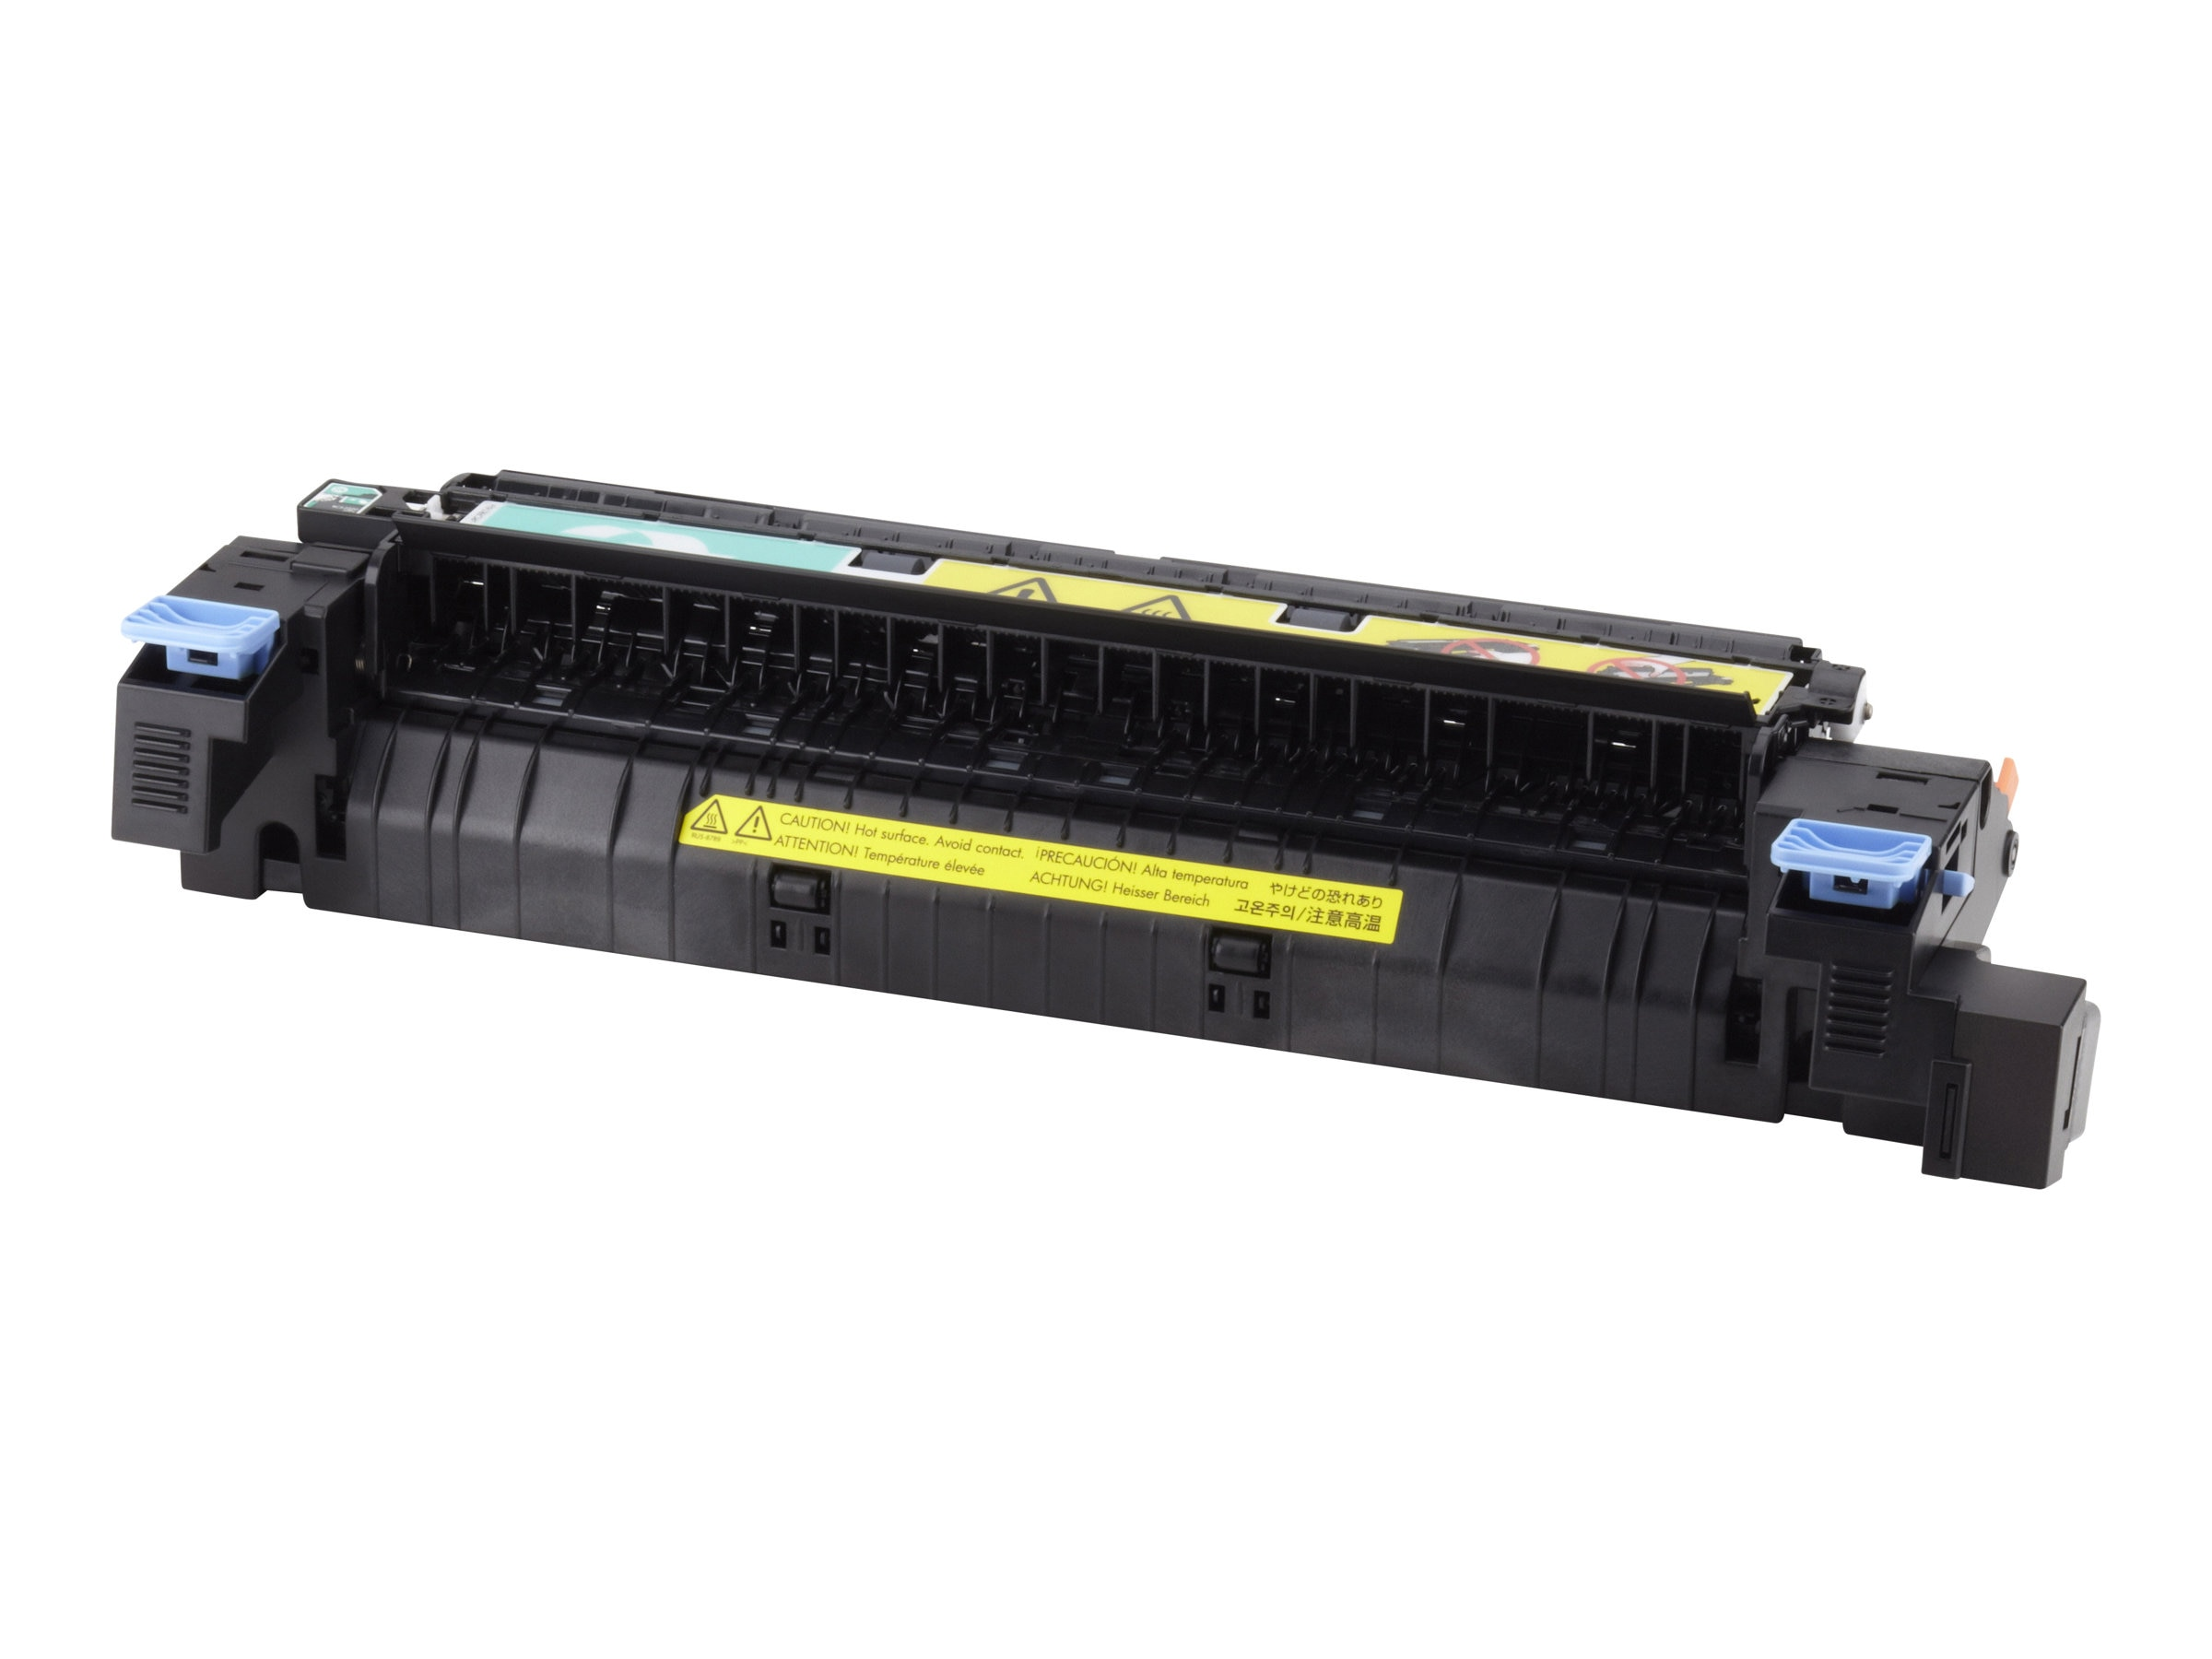 HP LaserJet 220V Maintenance Kit for HP LaserJet Enteprise 700 color MFP M775 Series